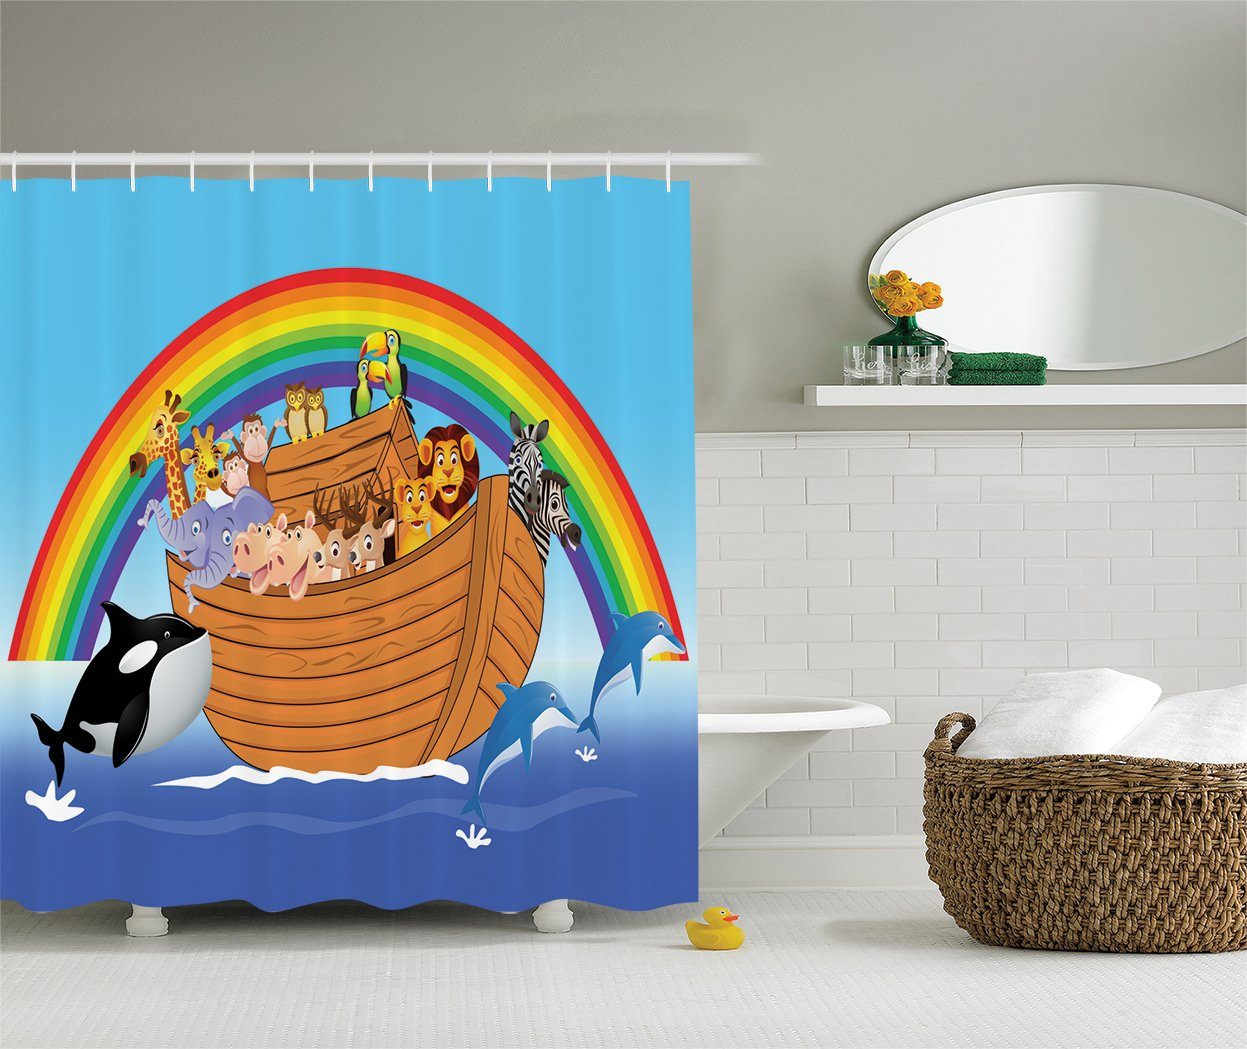 Ambesonne Noah's Ark Decor Collection, Noah's Ark with Funny Animals Dolphins Swimming Artistic Design, Polyester Fabric Bathroom Shower Curtain, Peru Blue Red Yellow